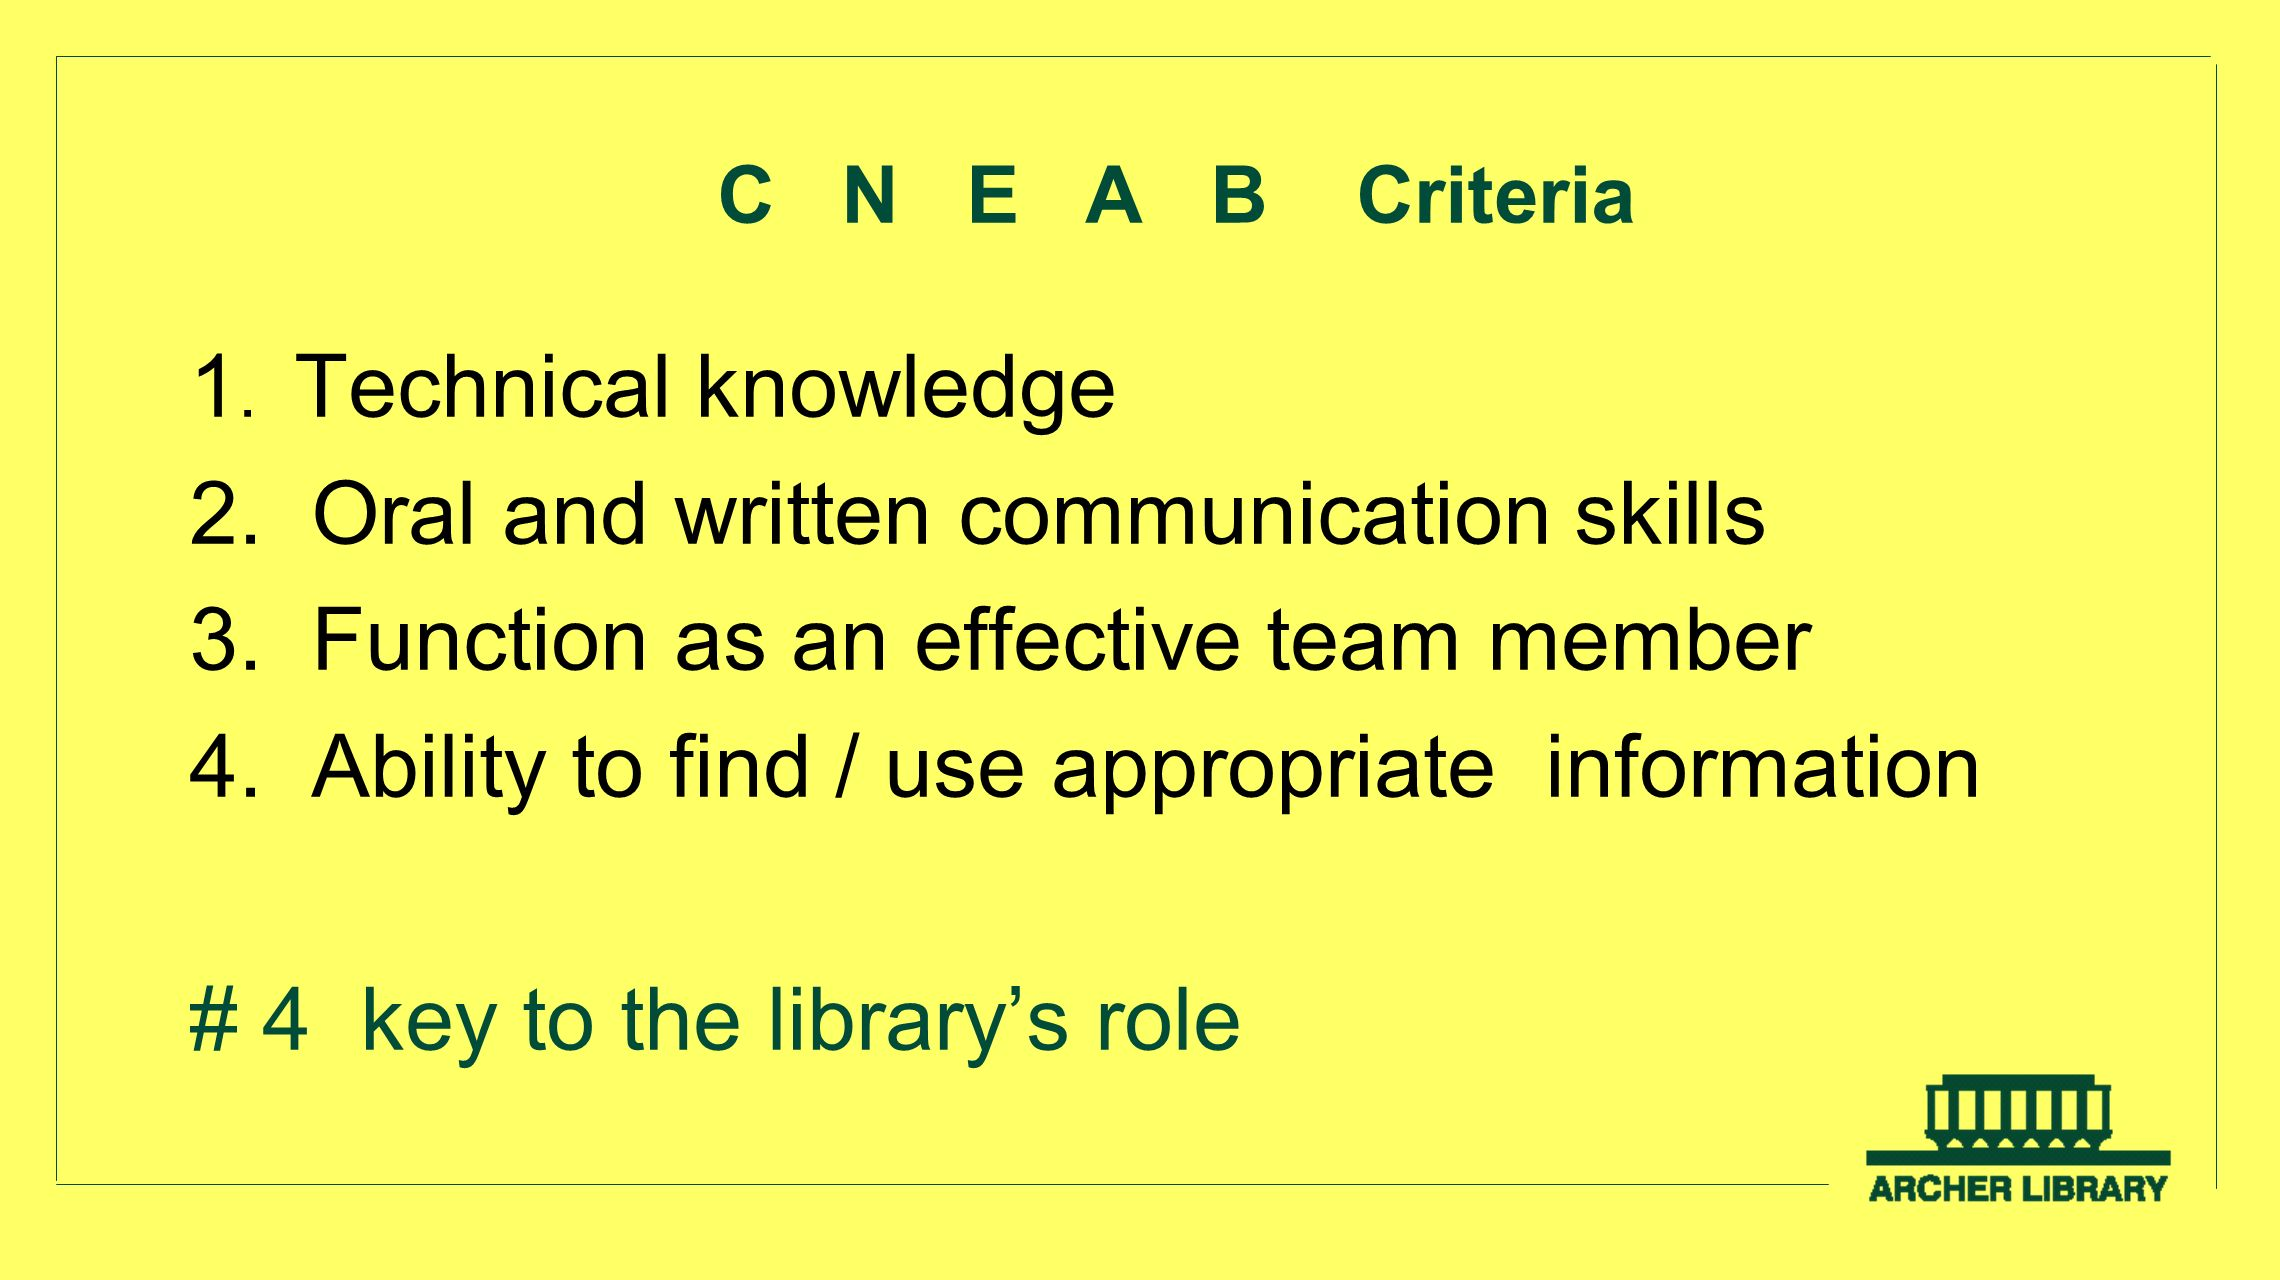 C N E A B Criteria 1. Technical knowledge 2. Oral and written communication skills 3. Function as an effective team member 4. Ability to find / use ap